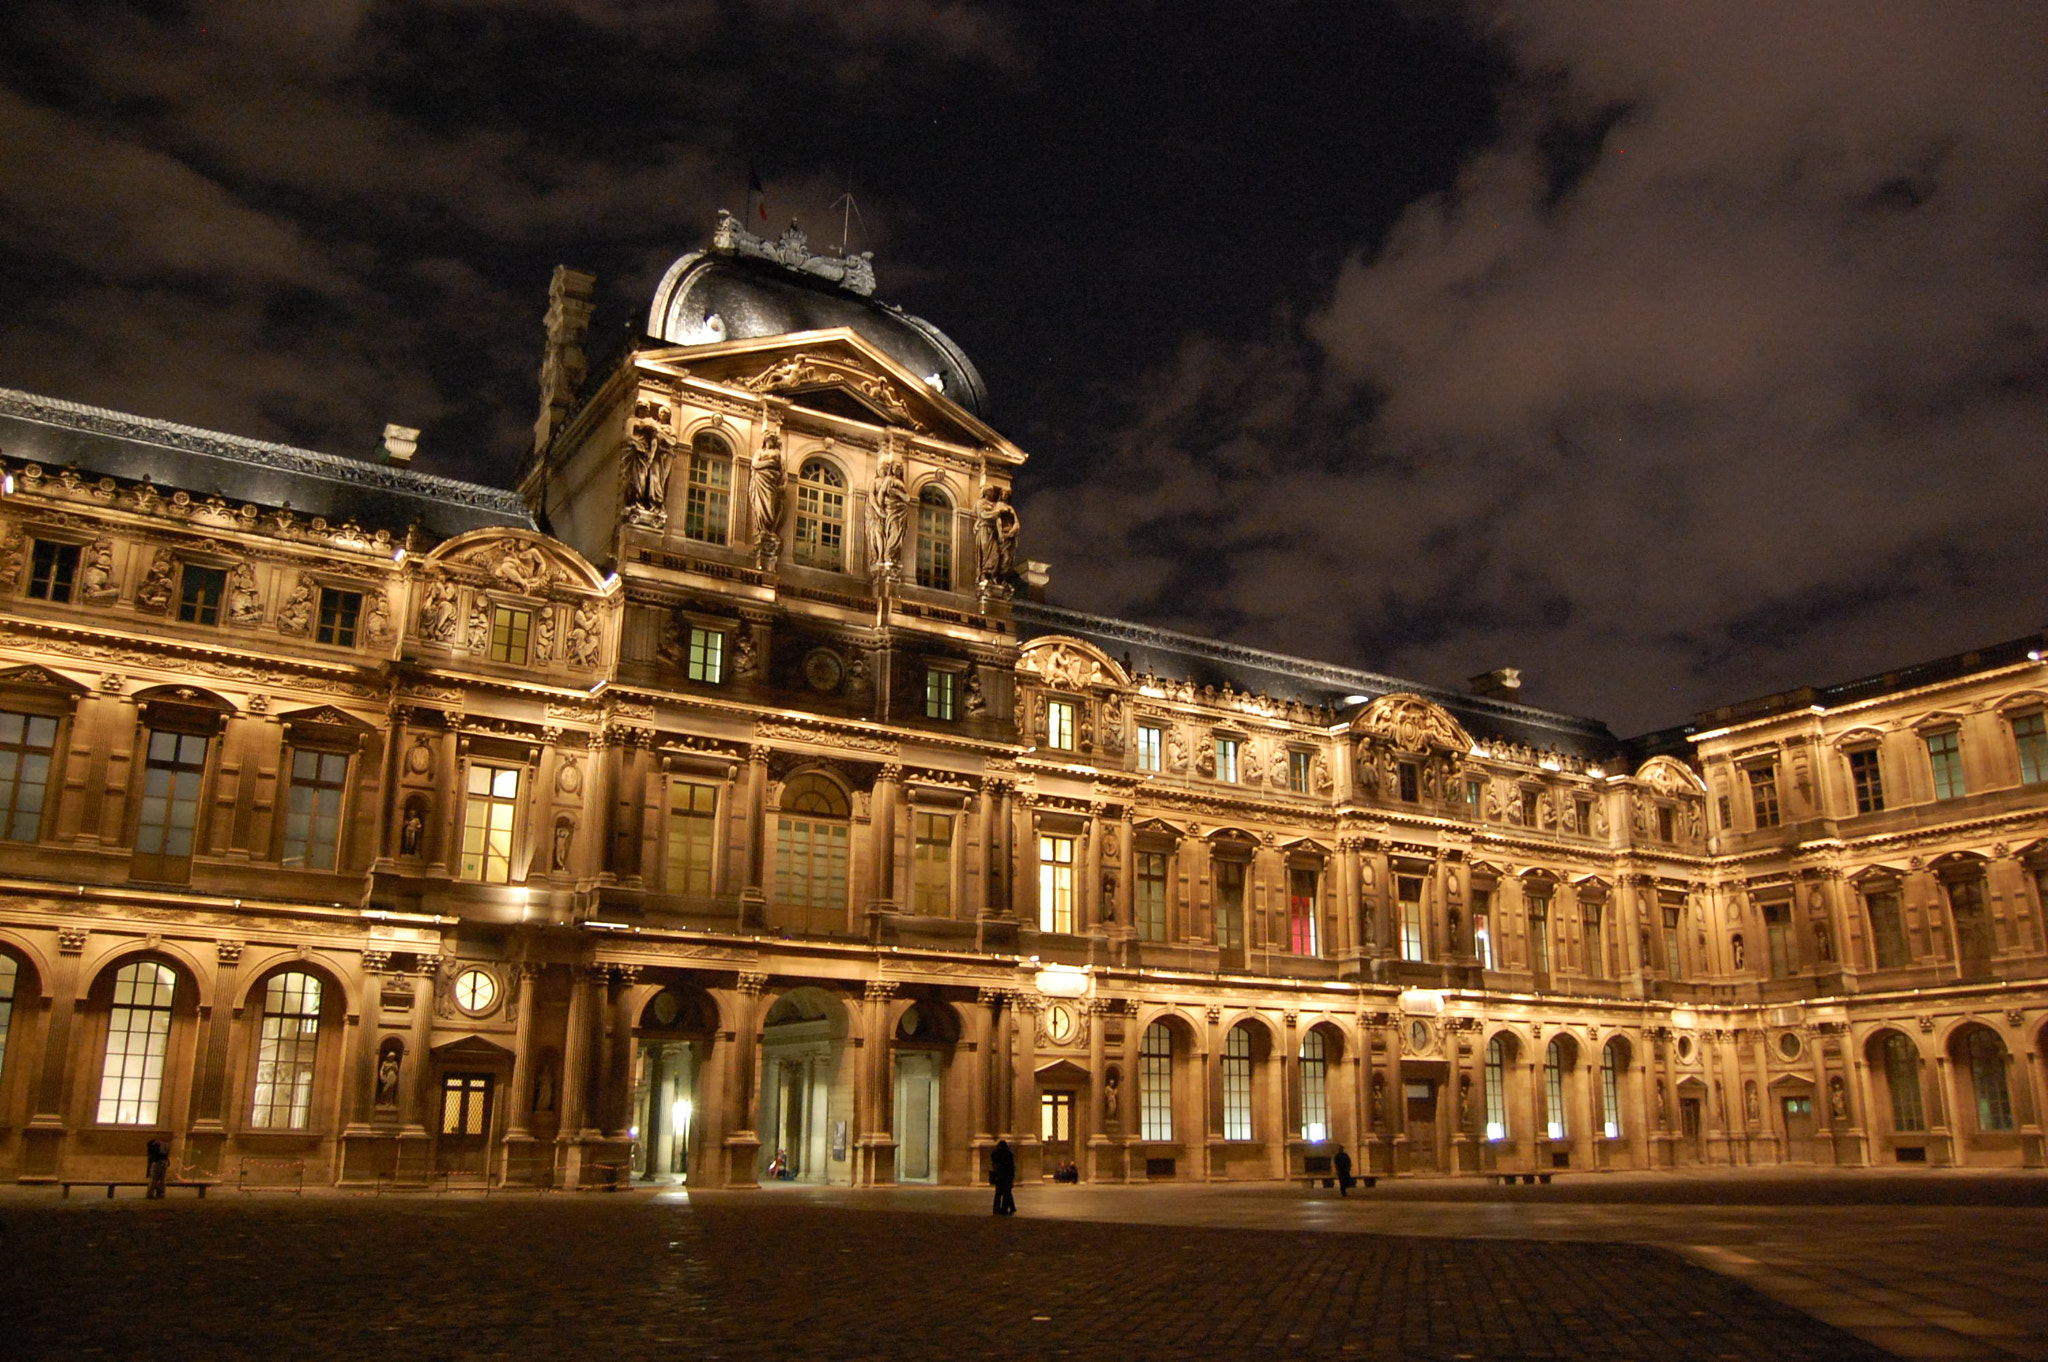 Photograph Louvre by Riccardo Giuliano on 500px